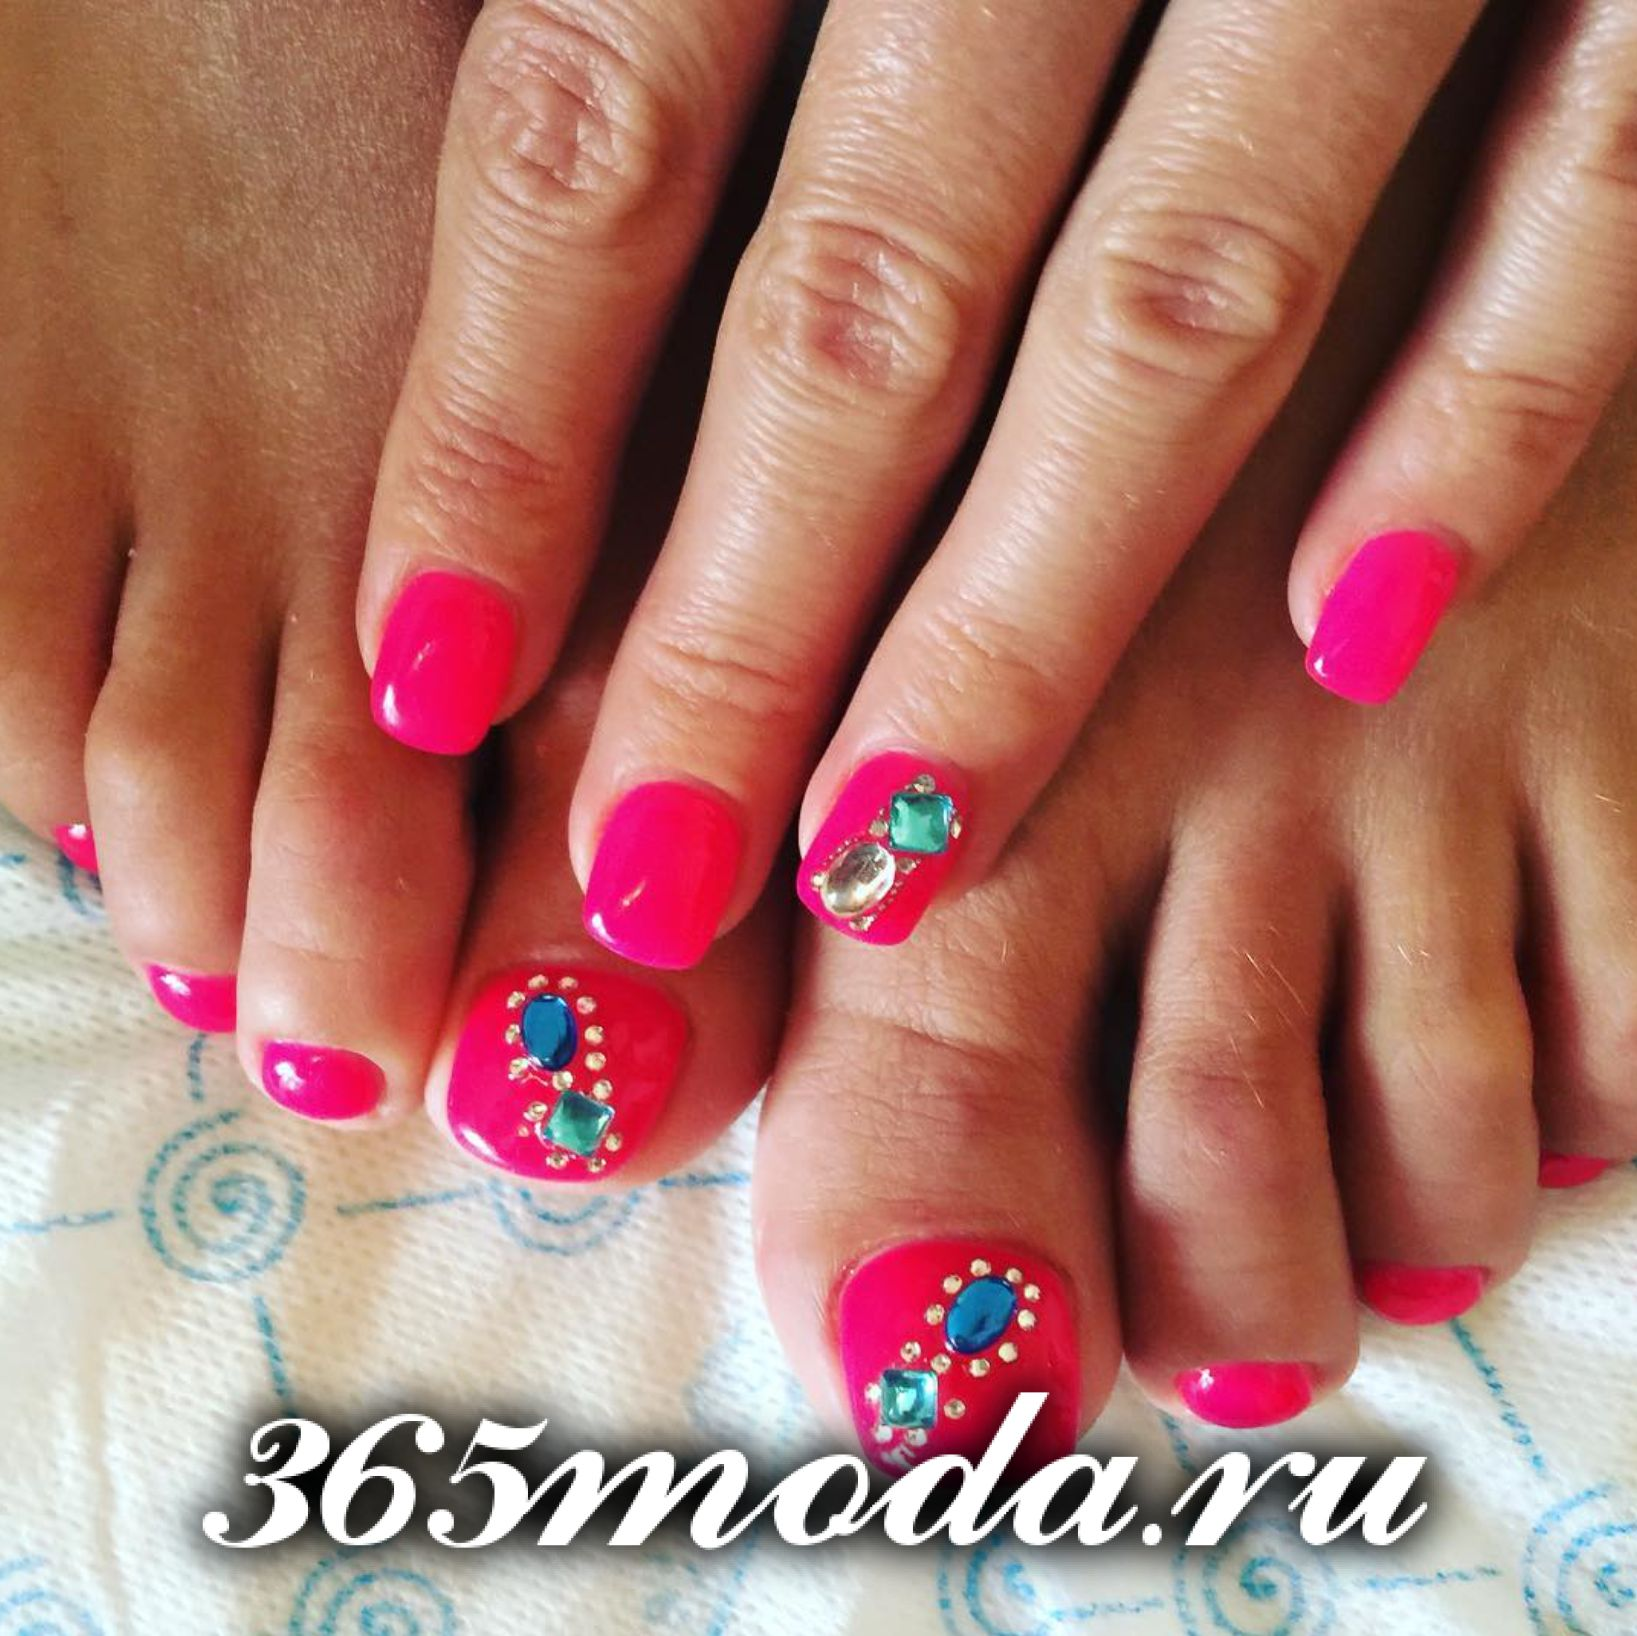 pedicur (6)